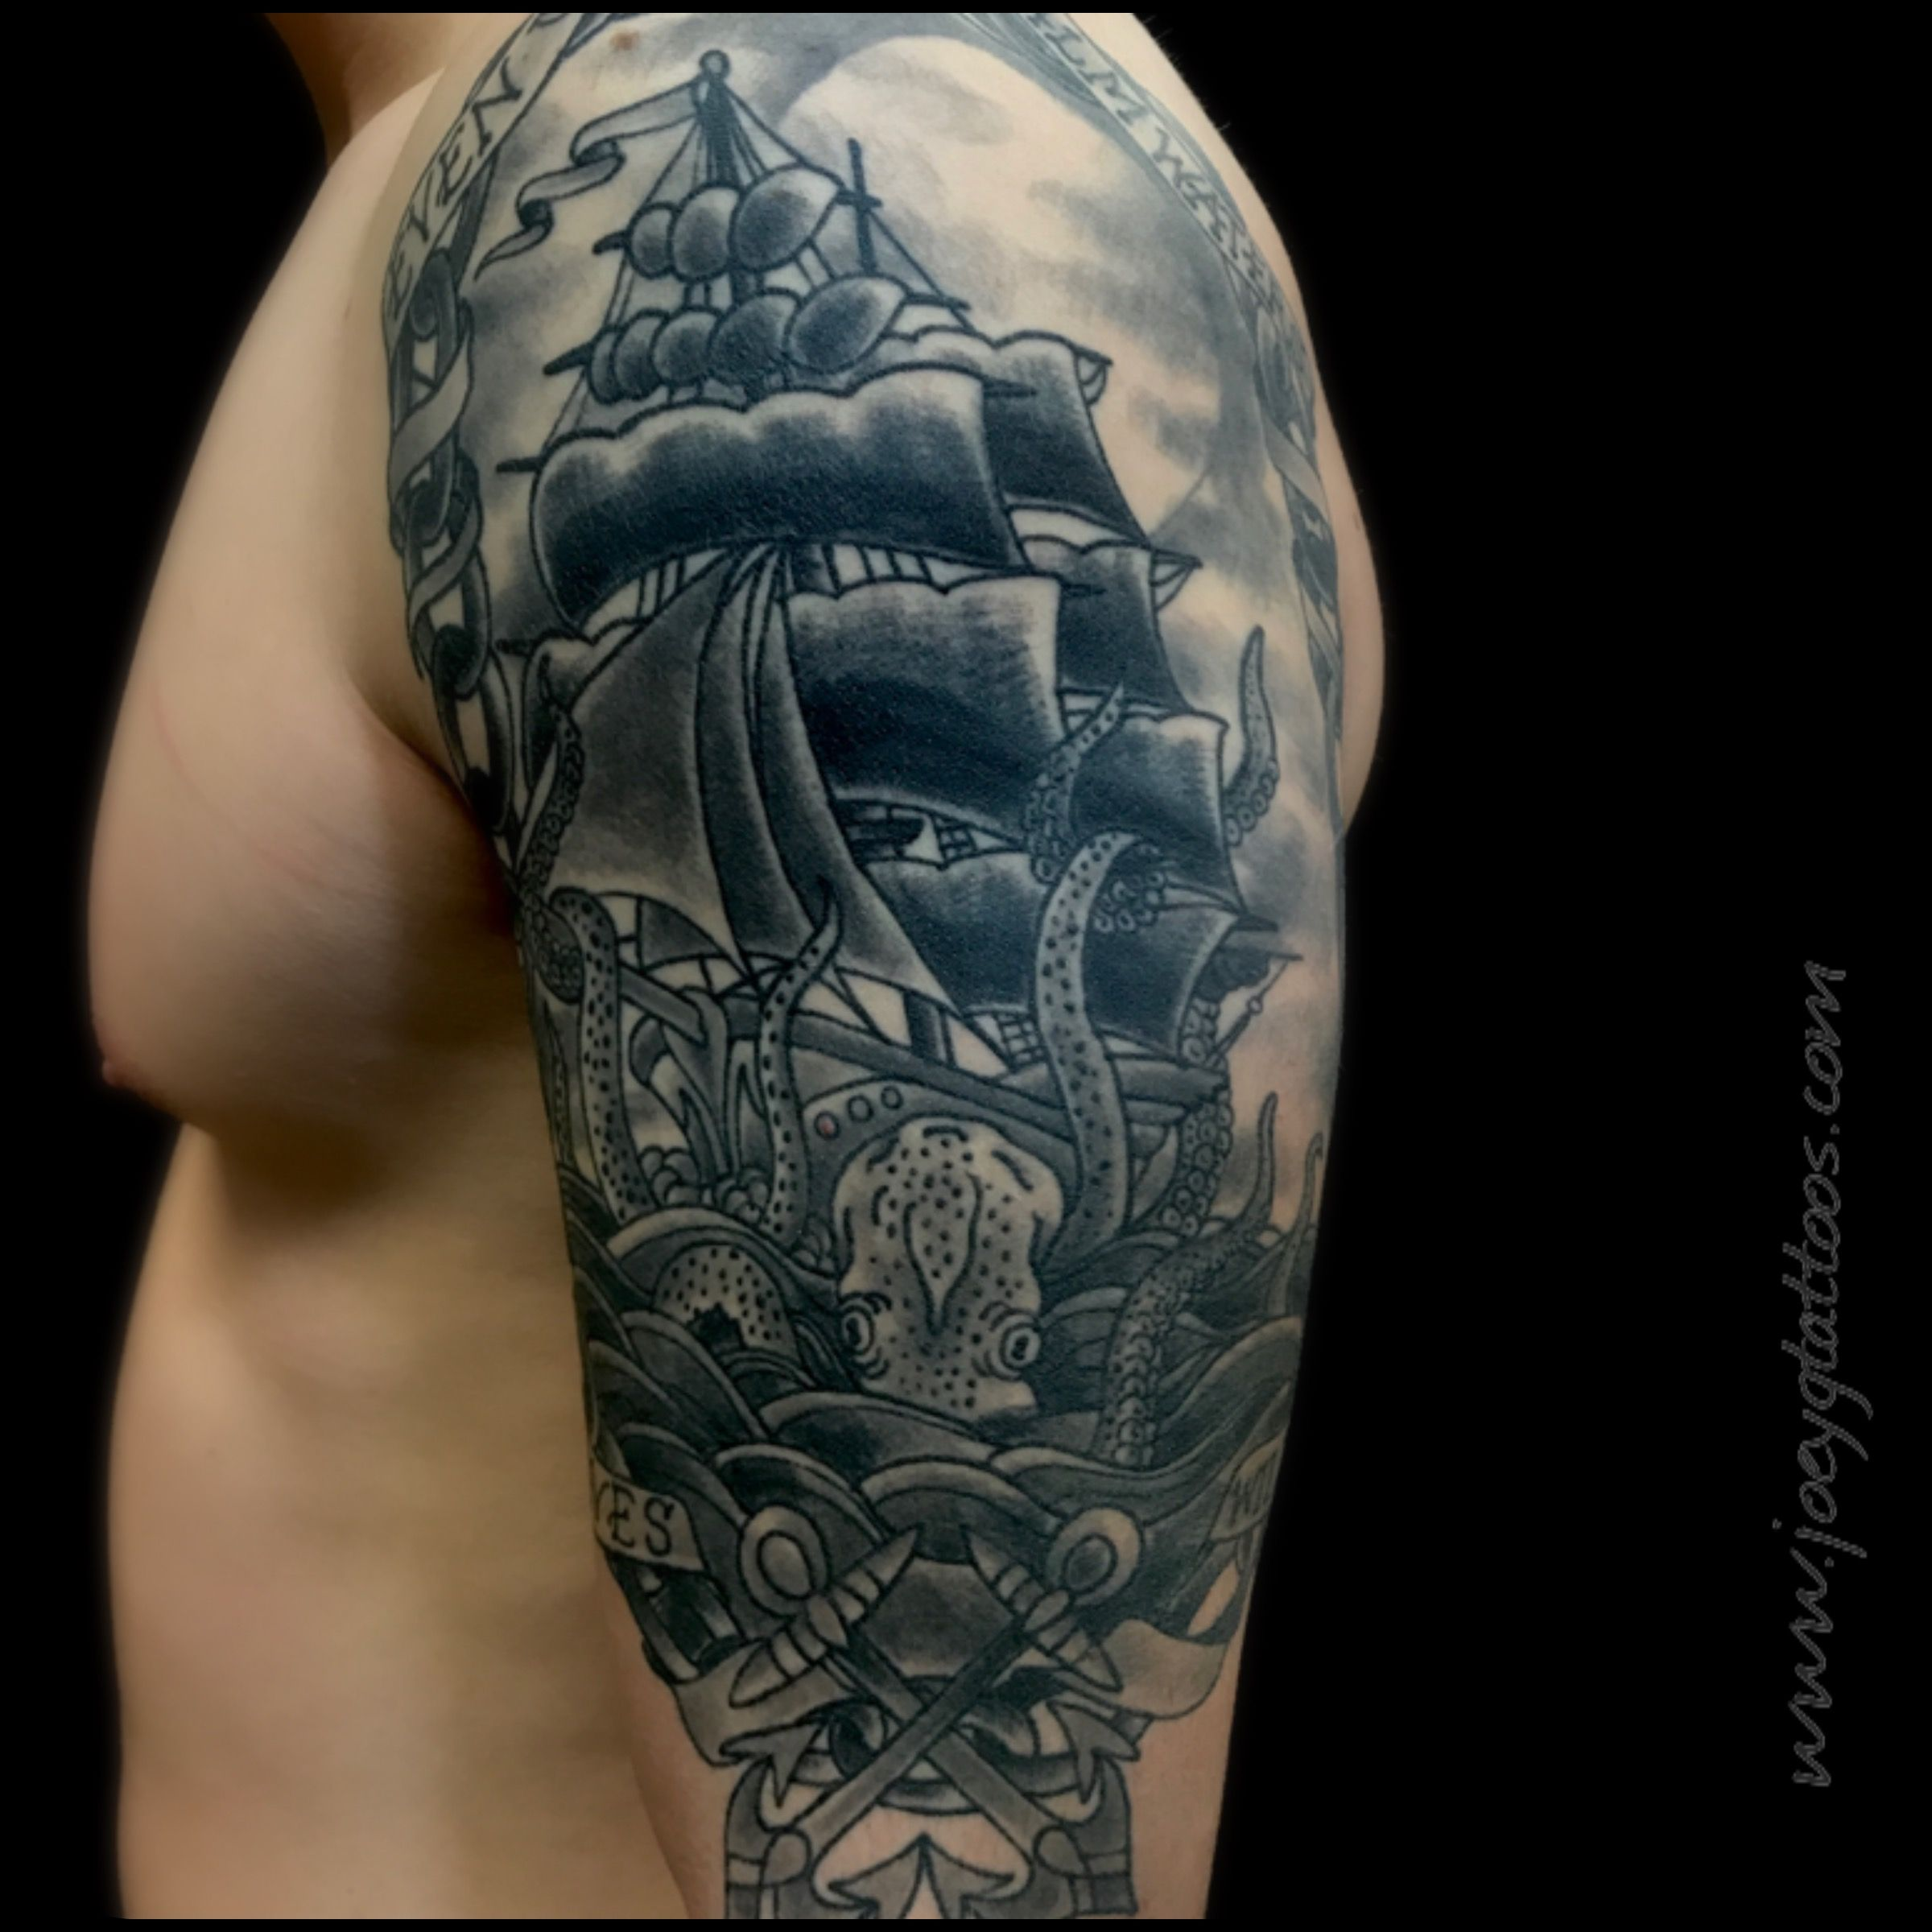 Black And Gray Tattoo Sleeve Ideas Guys With Ink Ship With Octopus Tattoo Tattoosleve Tattooide Grey Tattoo Octopus Tattoo Sleeve Octopus Tattoo Design